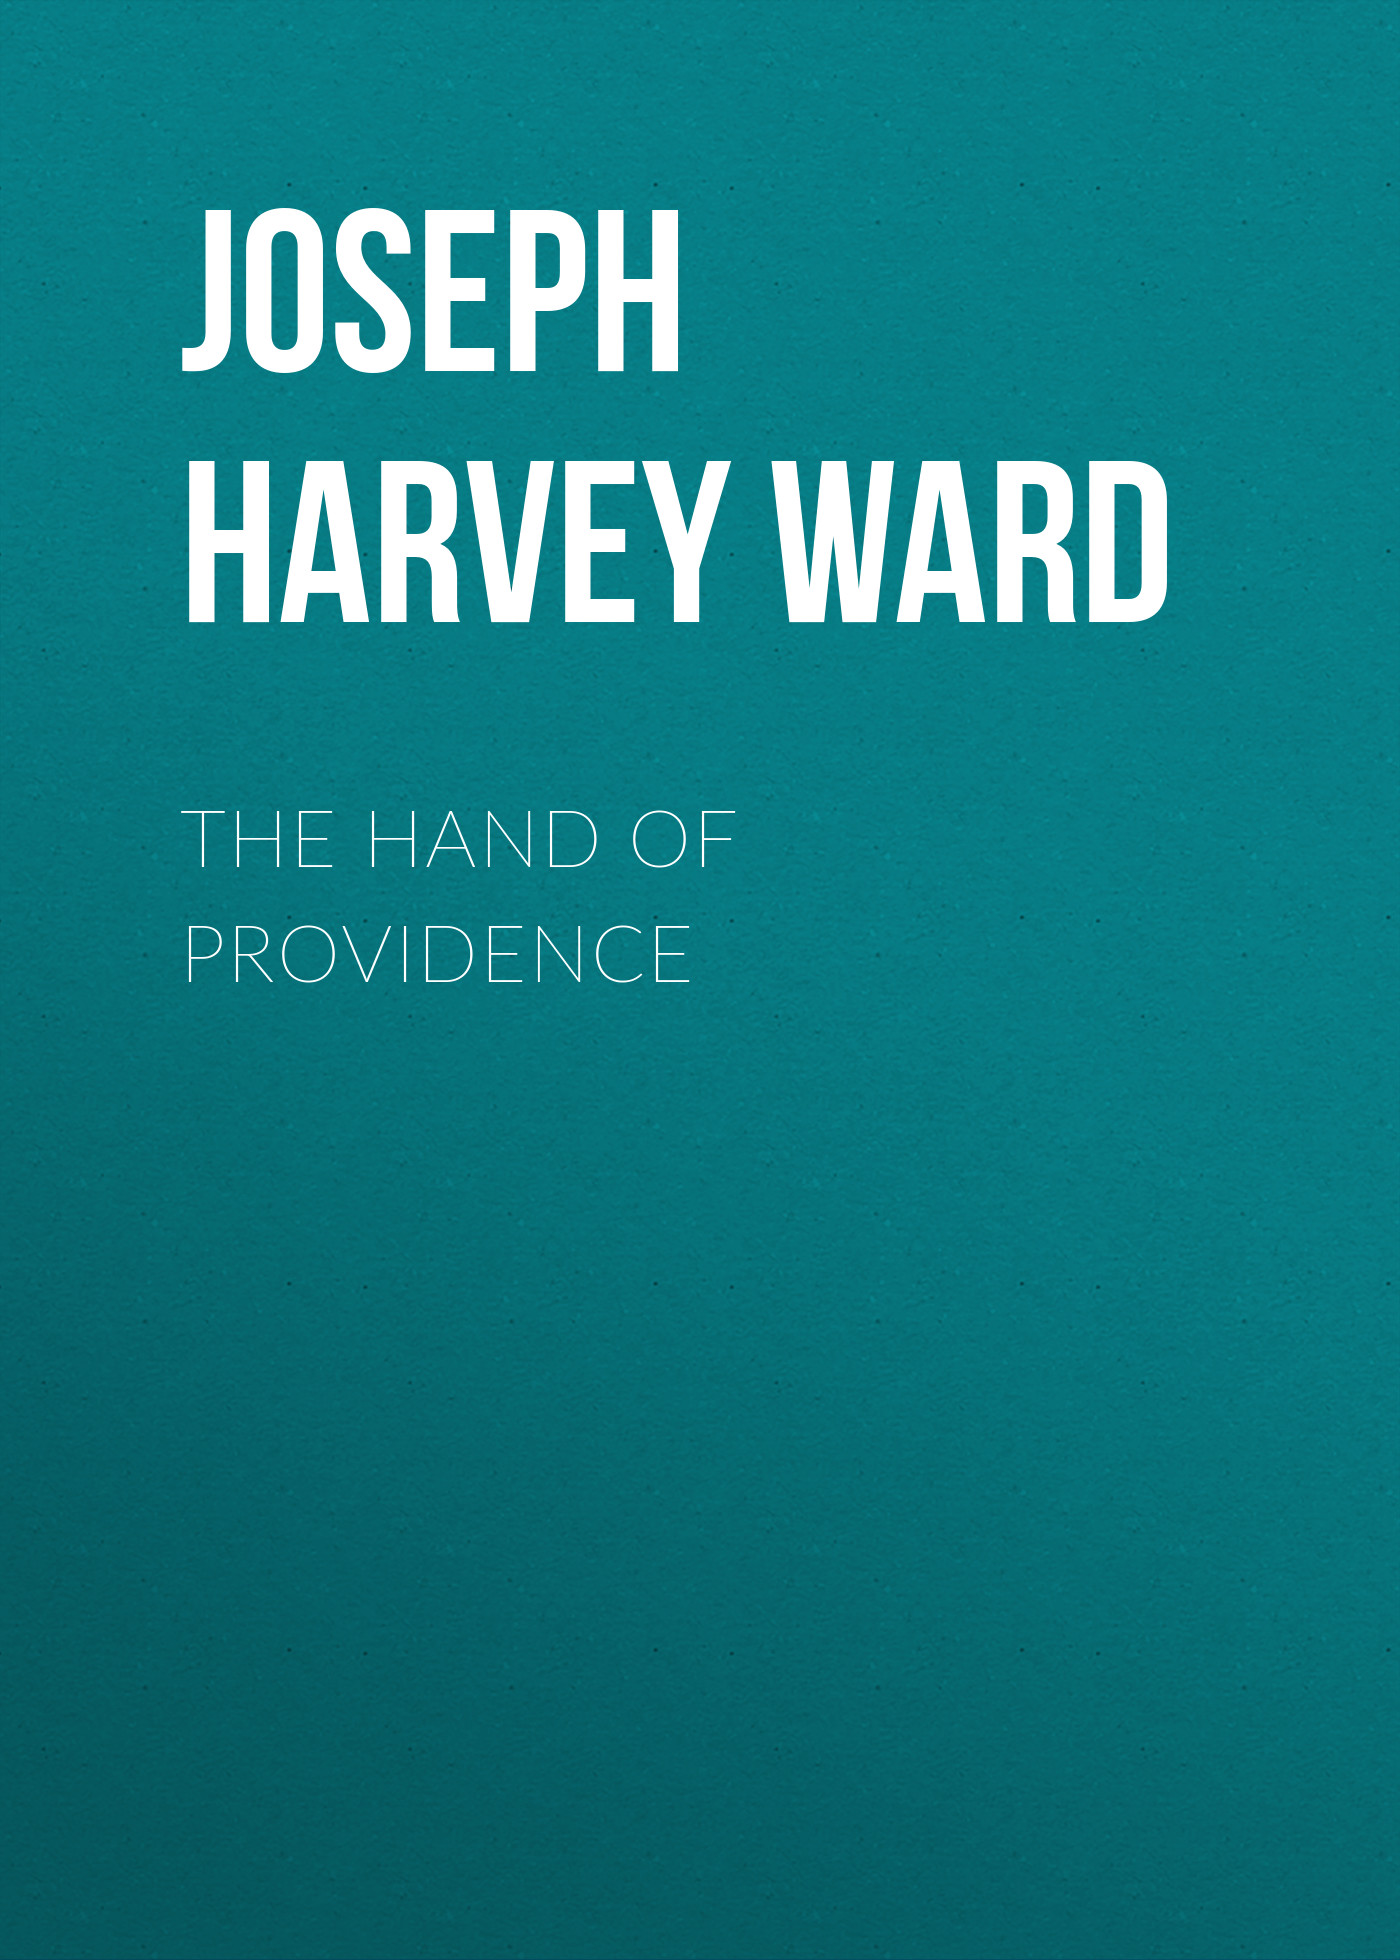 Joseph Harvey Ward The Hand of Providence